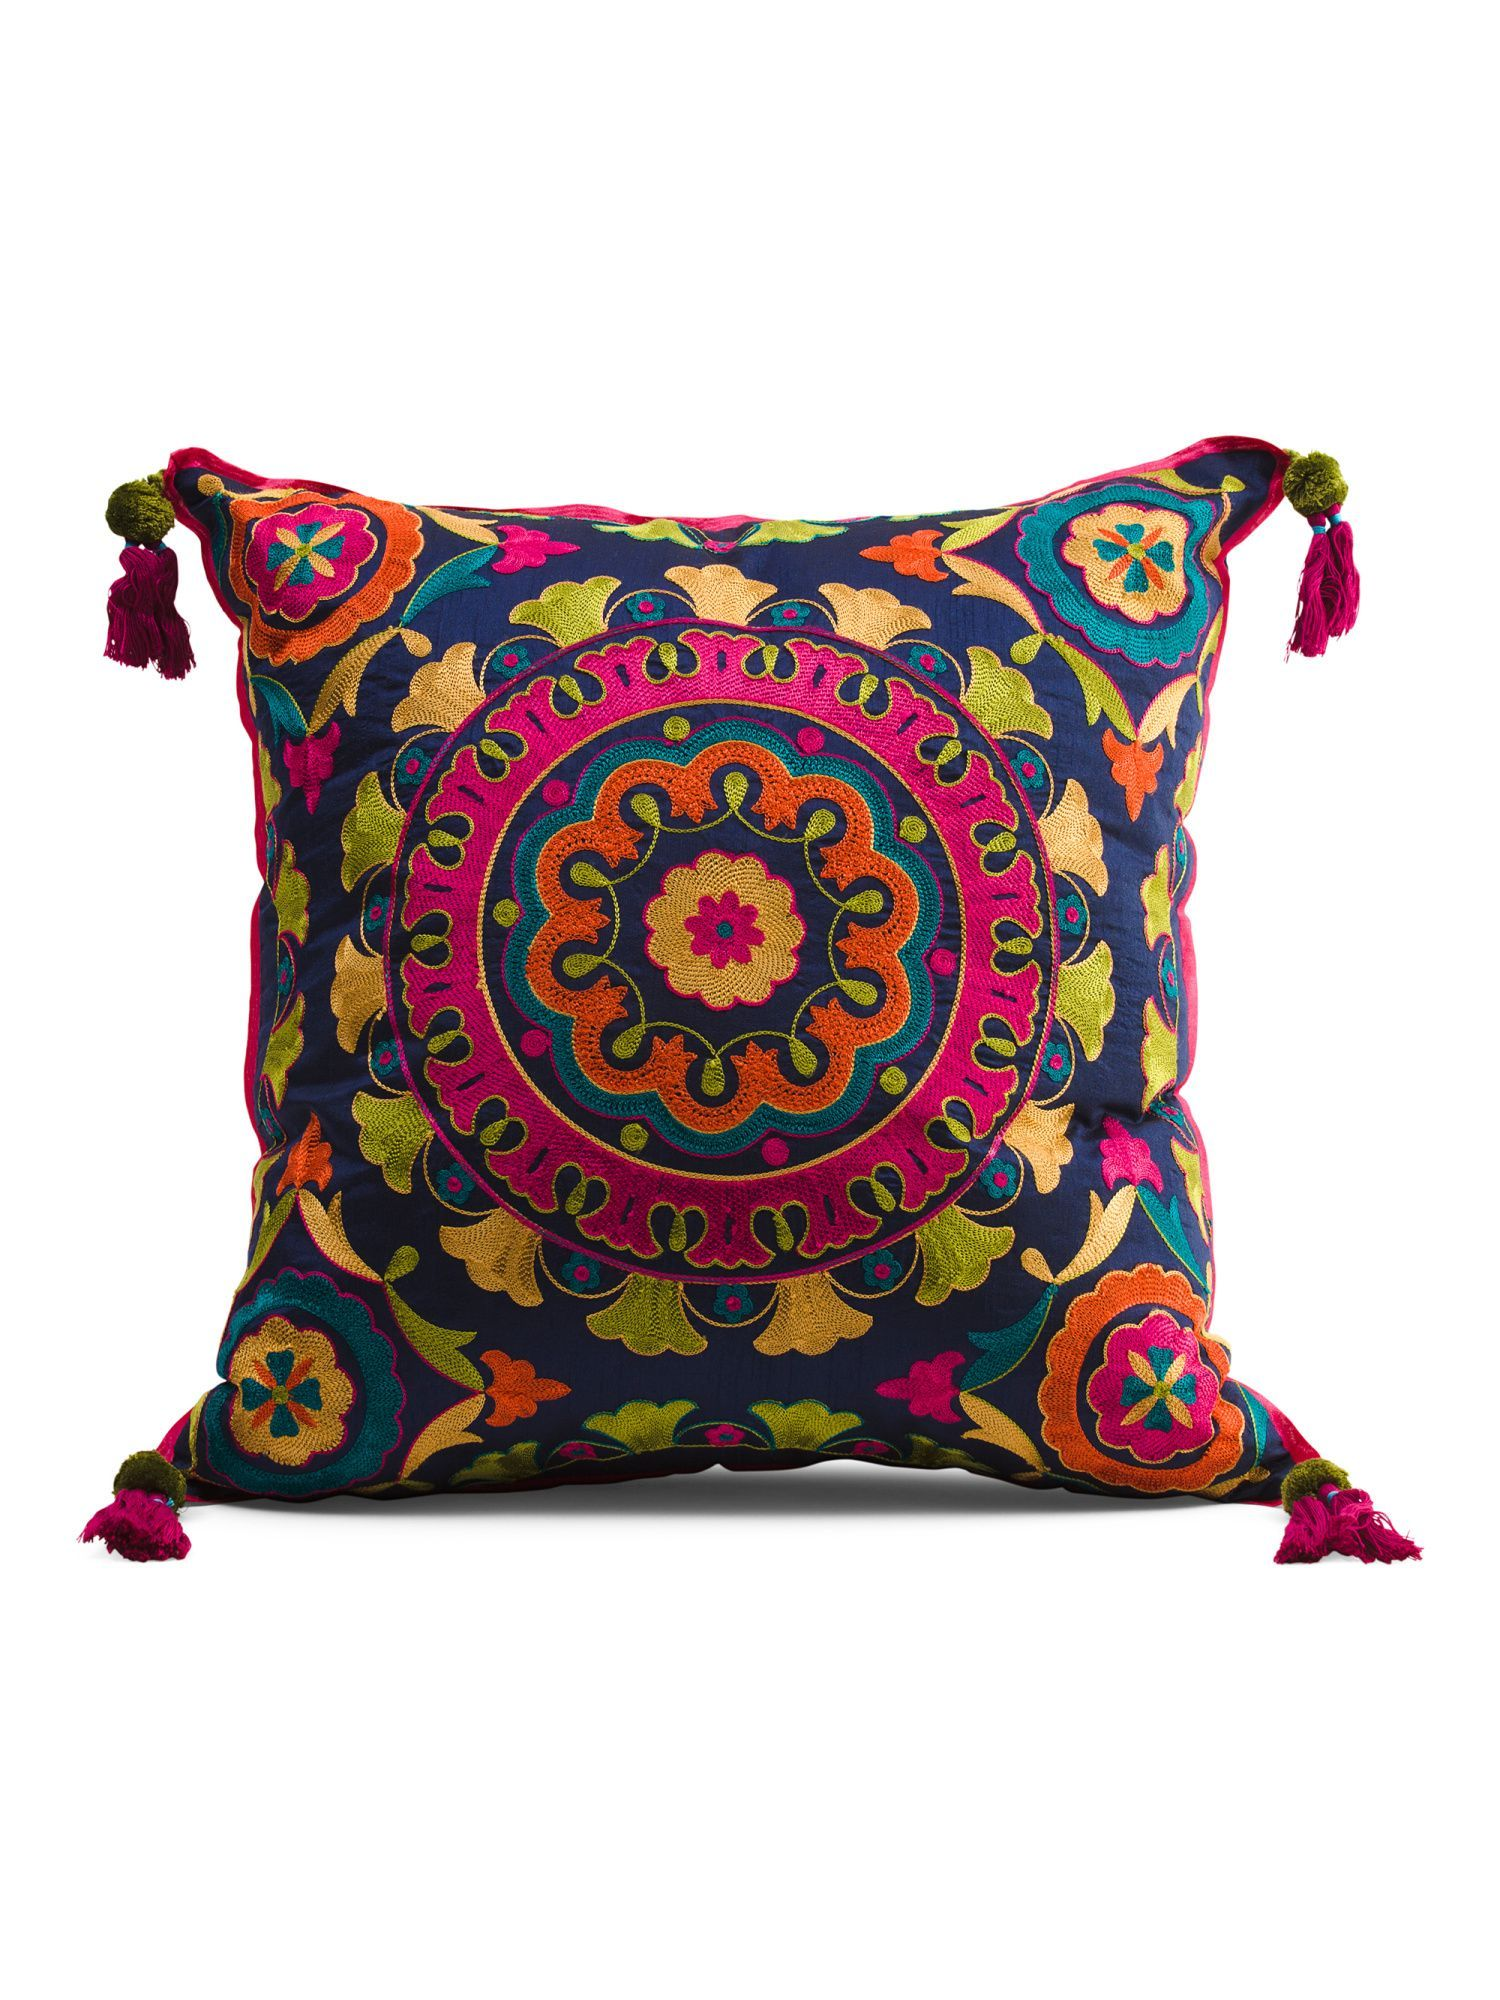 Made in india x handmade pillow products pinterest